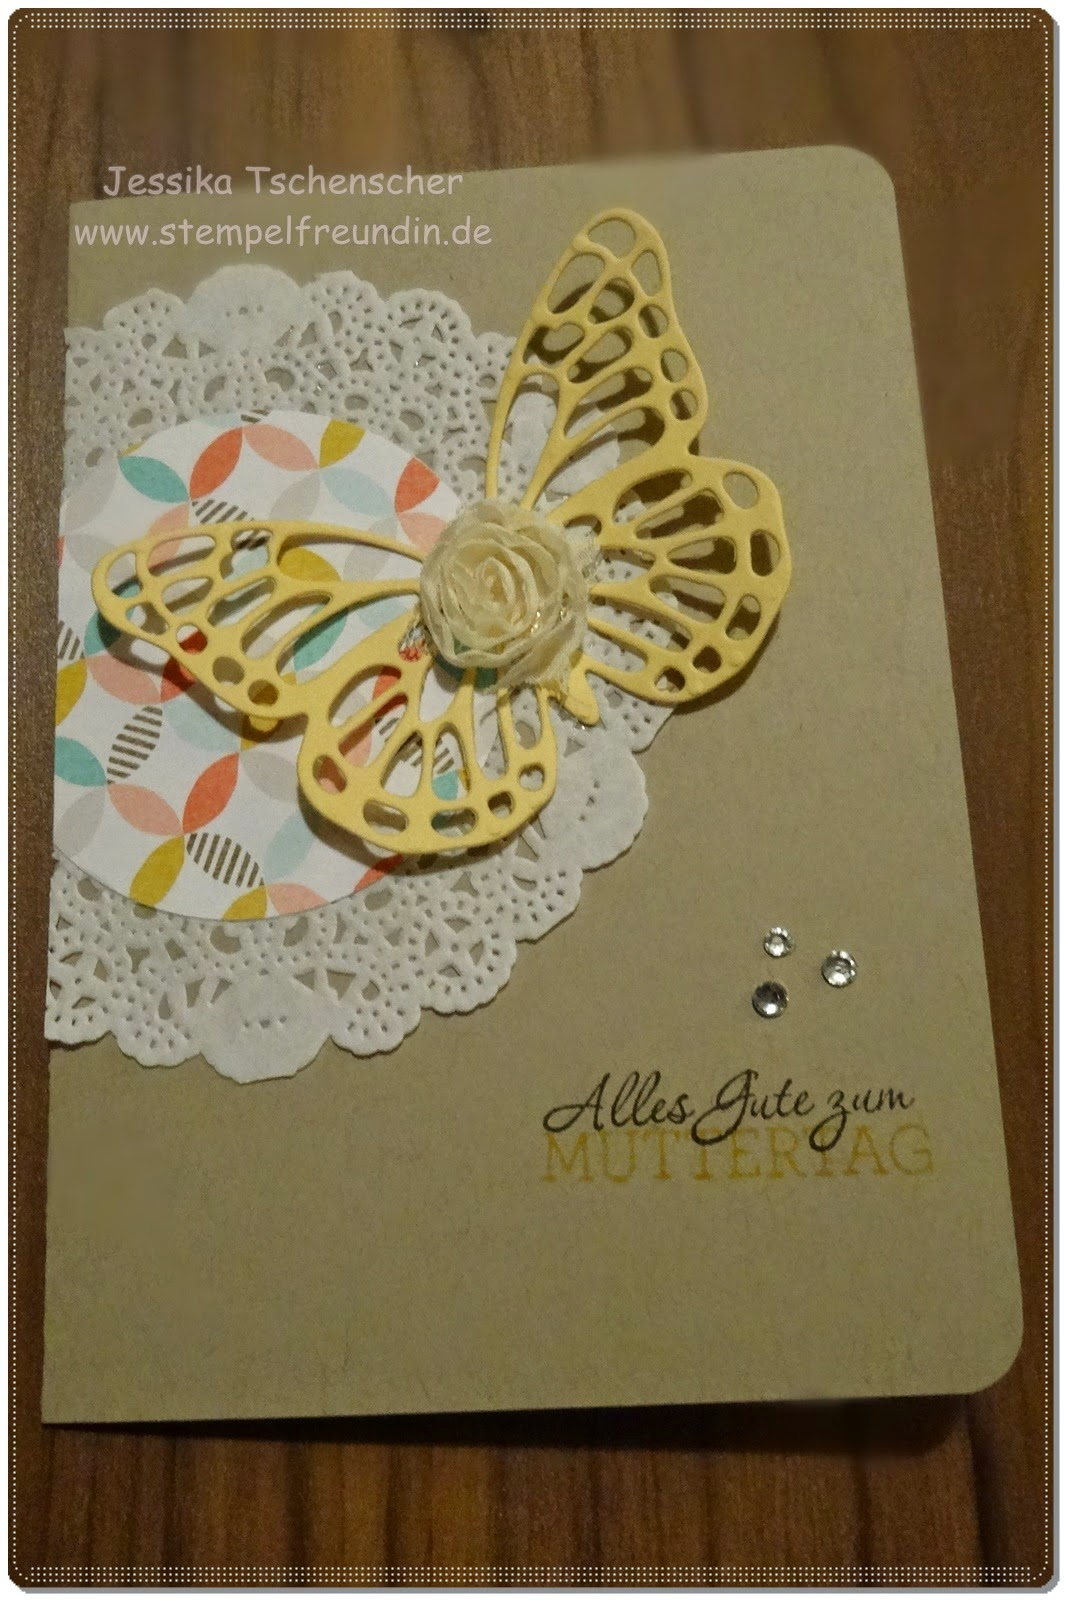 Stampin' Up!, Schmetterling, Thinlits, BigShot, Spitzendeckchen, Retro, Clean and Simple, www.stempelfreundin.de